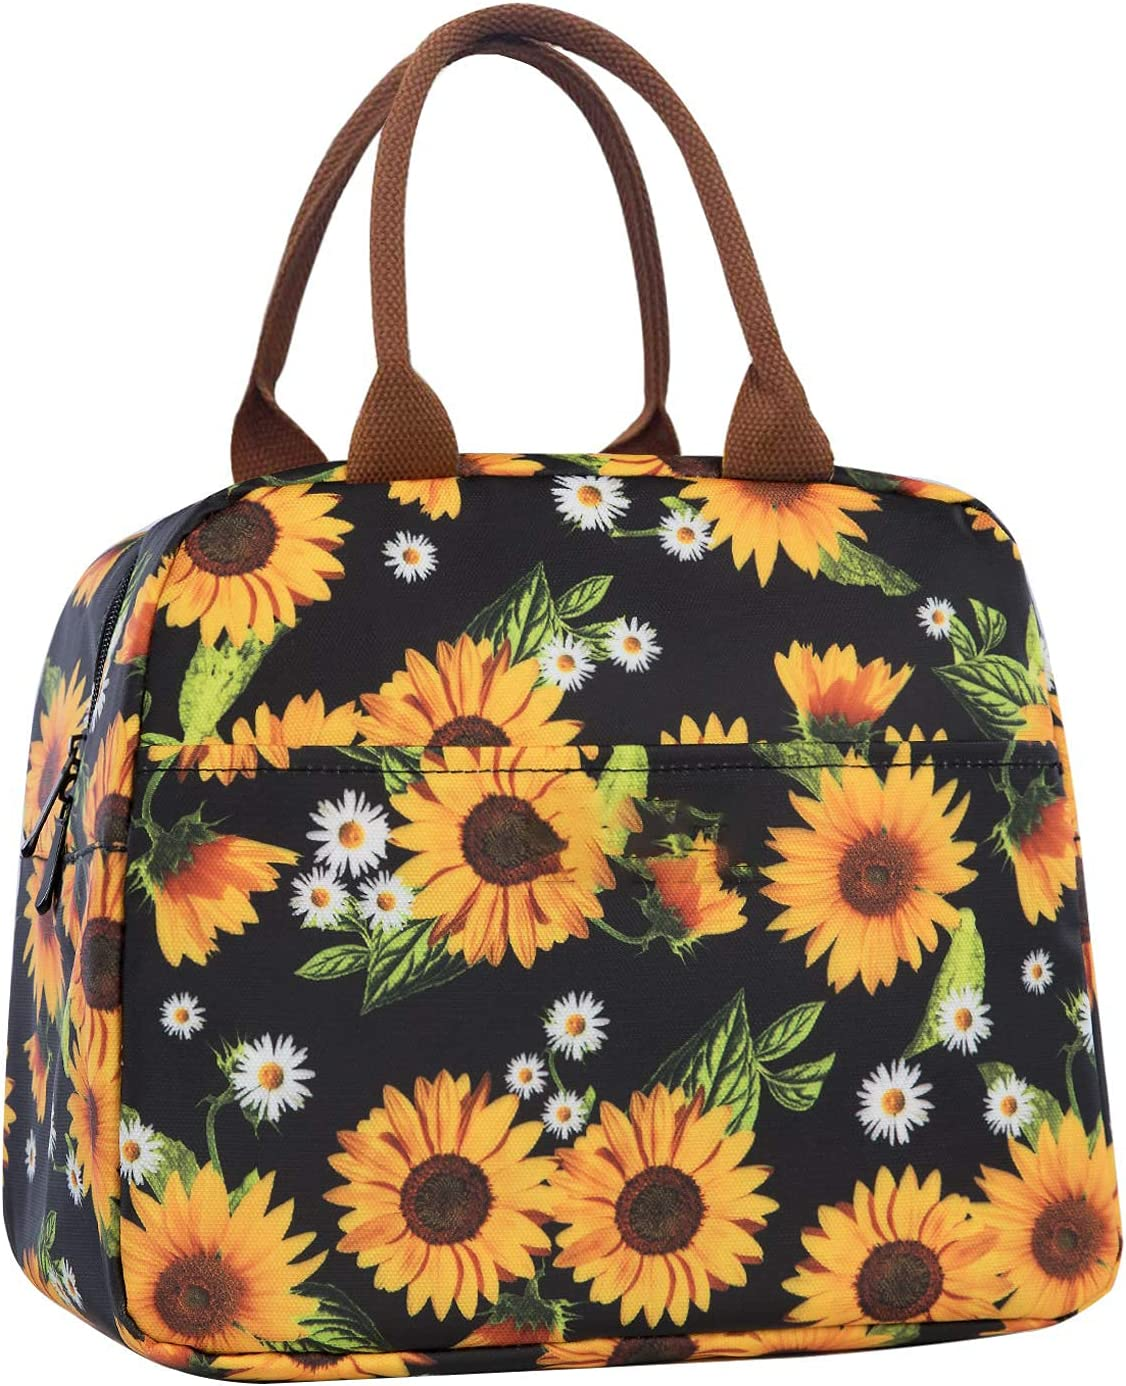 Direct sale of manufacturer Lunch Bags for Women mart Insulated Box with Bag Tote Fr Cooler